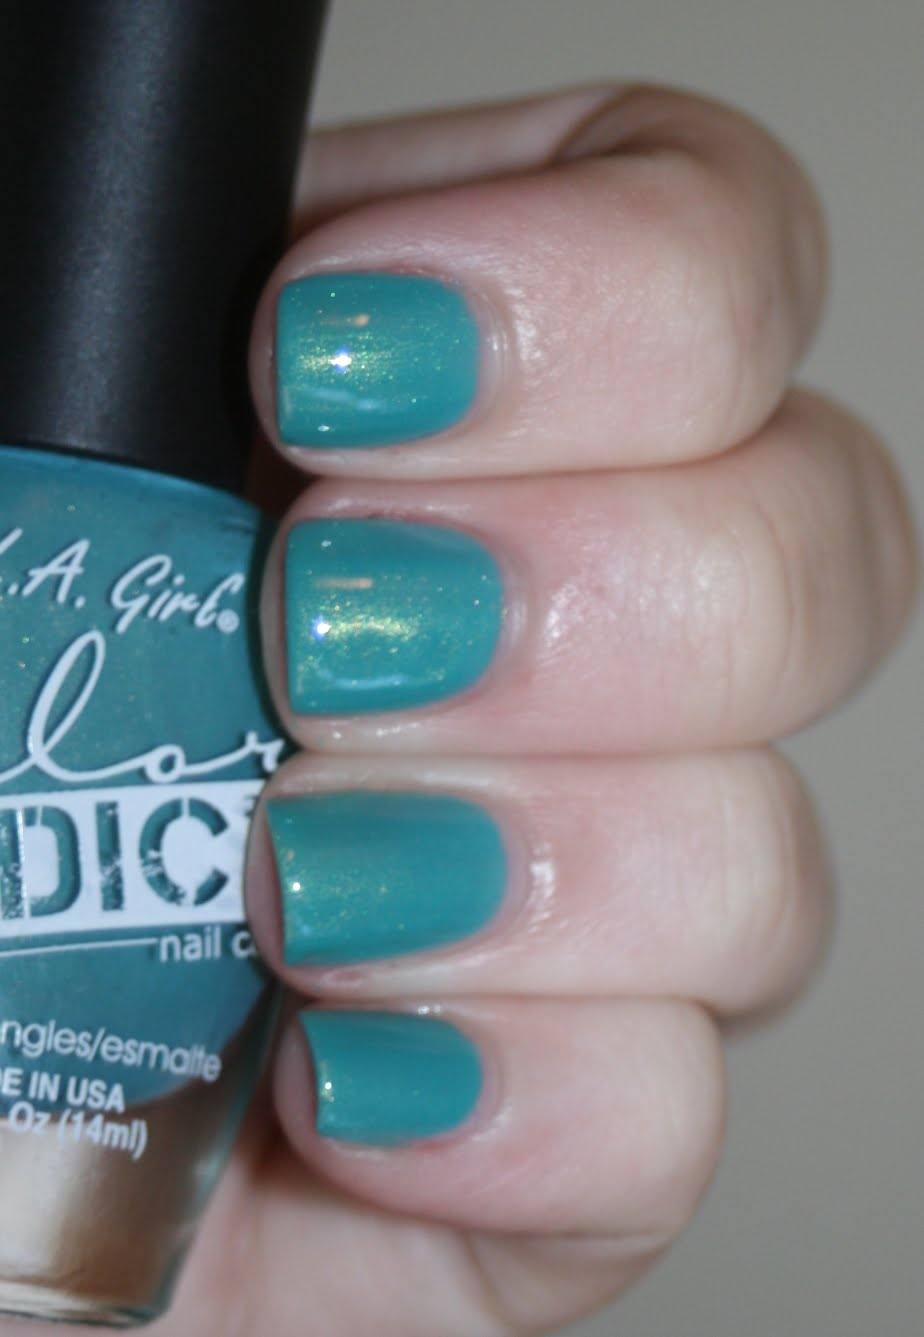 LA Girl Addict Delirious swatch